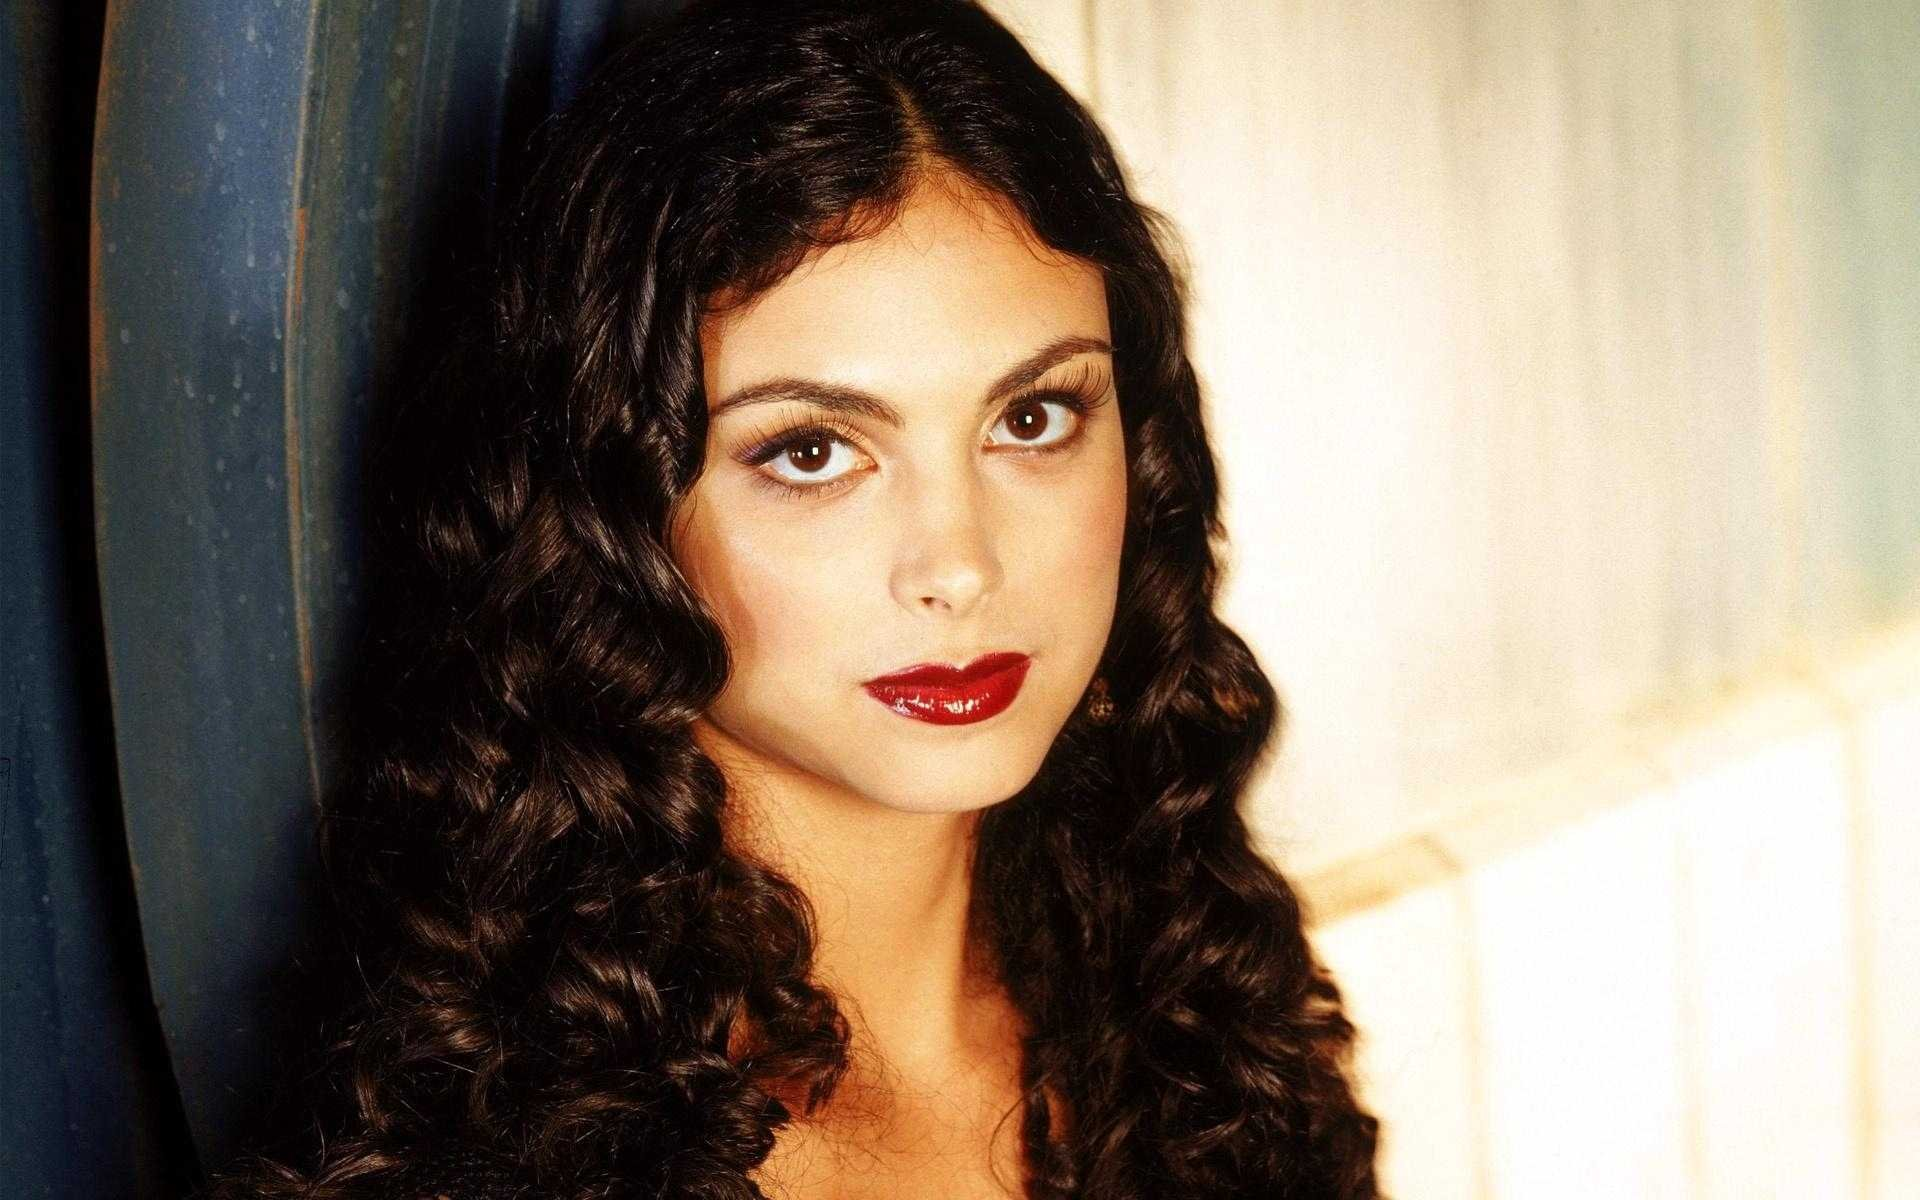 1920x1200 - Morena Baccarin Wallpapers 26